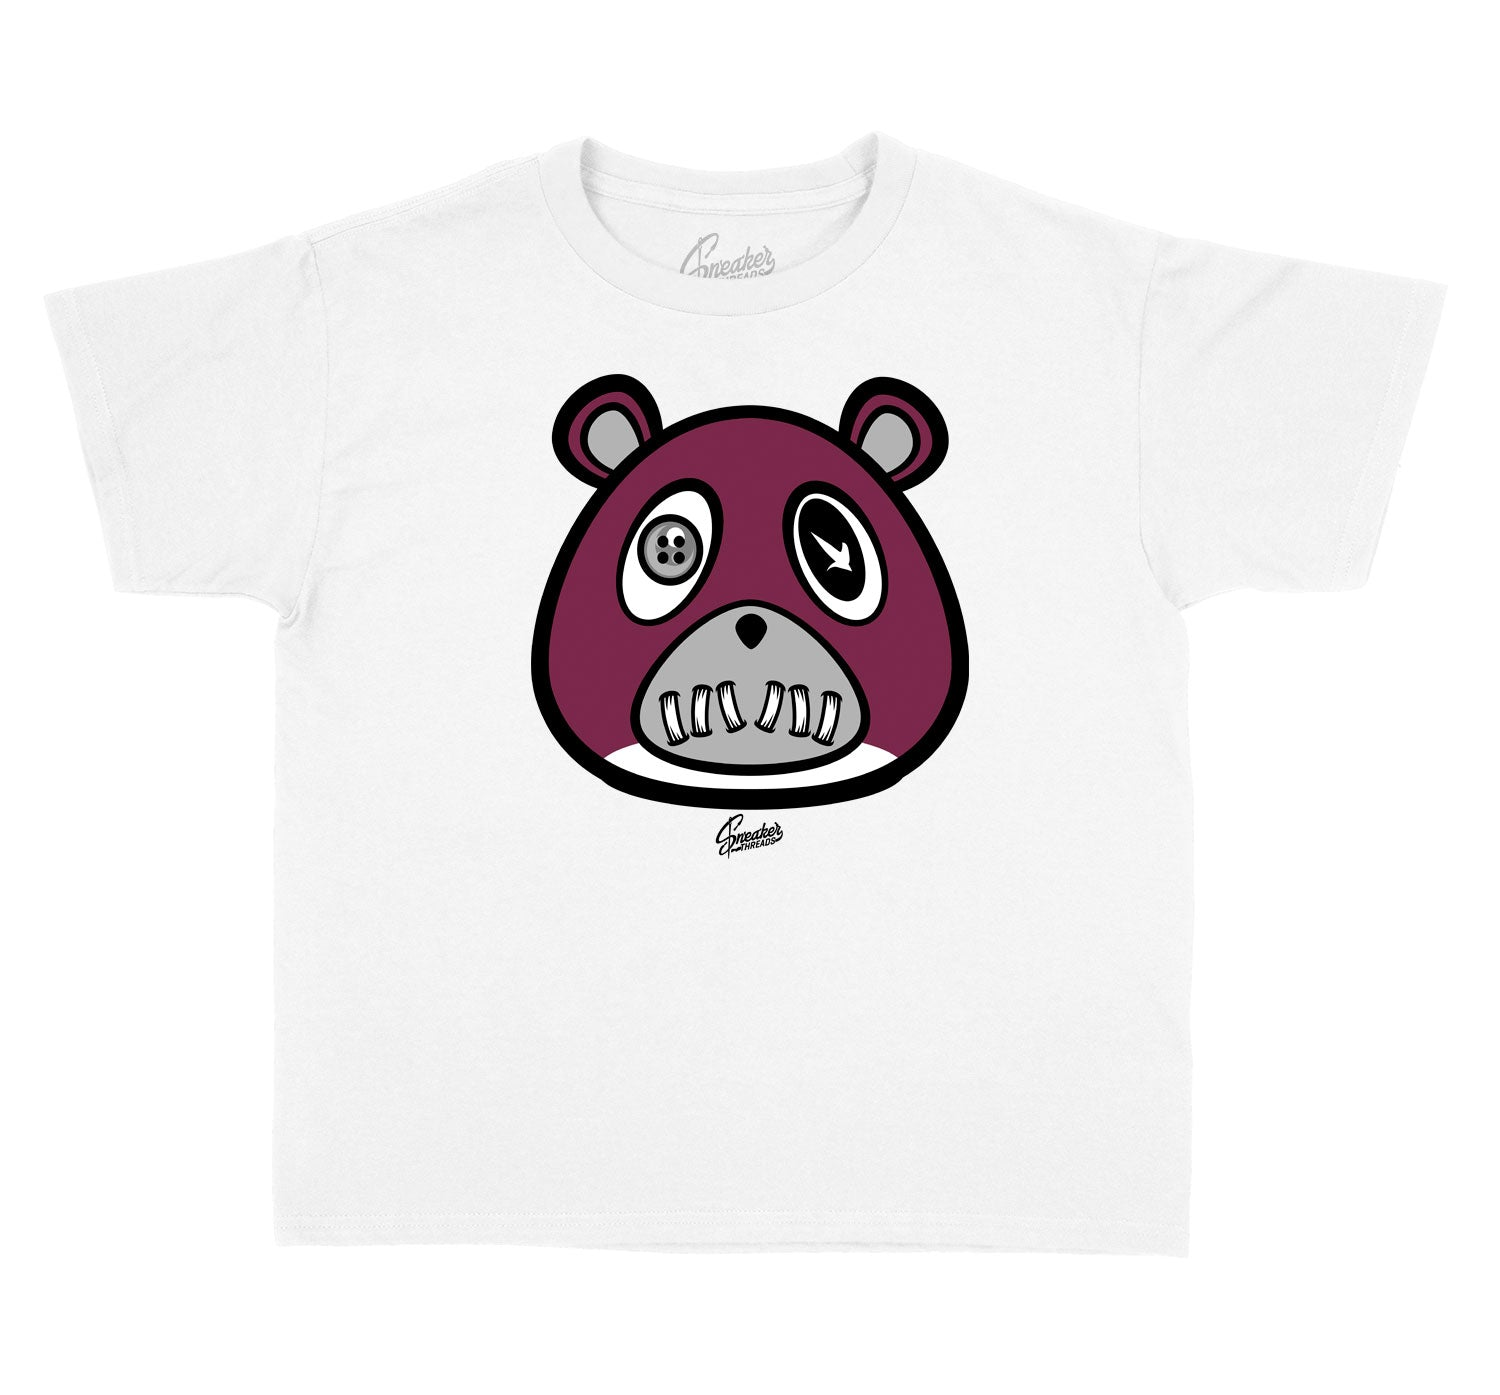 Jordan 8 burgundy sneaker that goes with kids tee collection